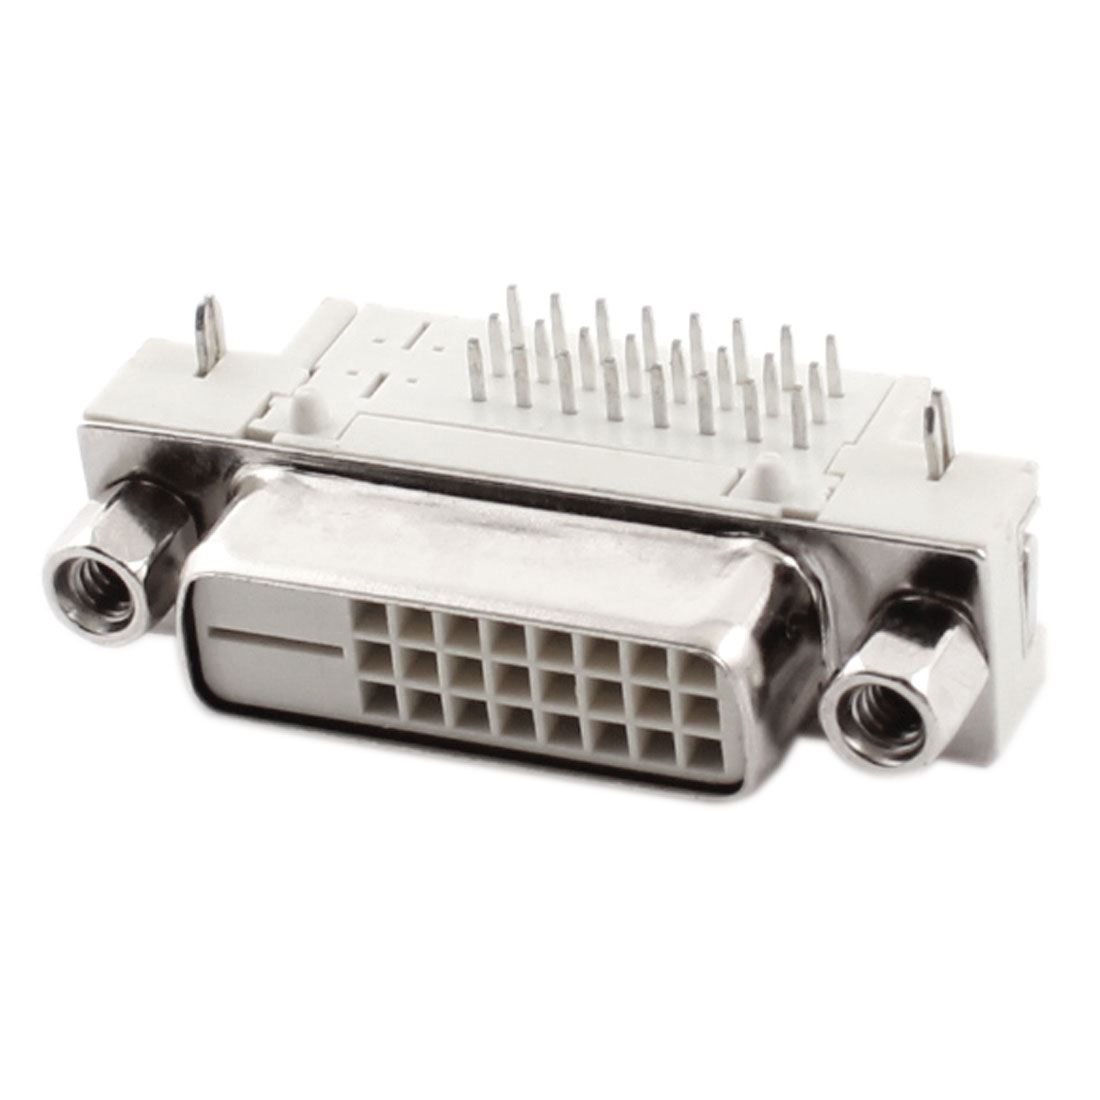 DVI-D 24+1 Pin Female Jack Right Angle Adapter Connector Gray Silver Tone